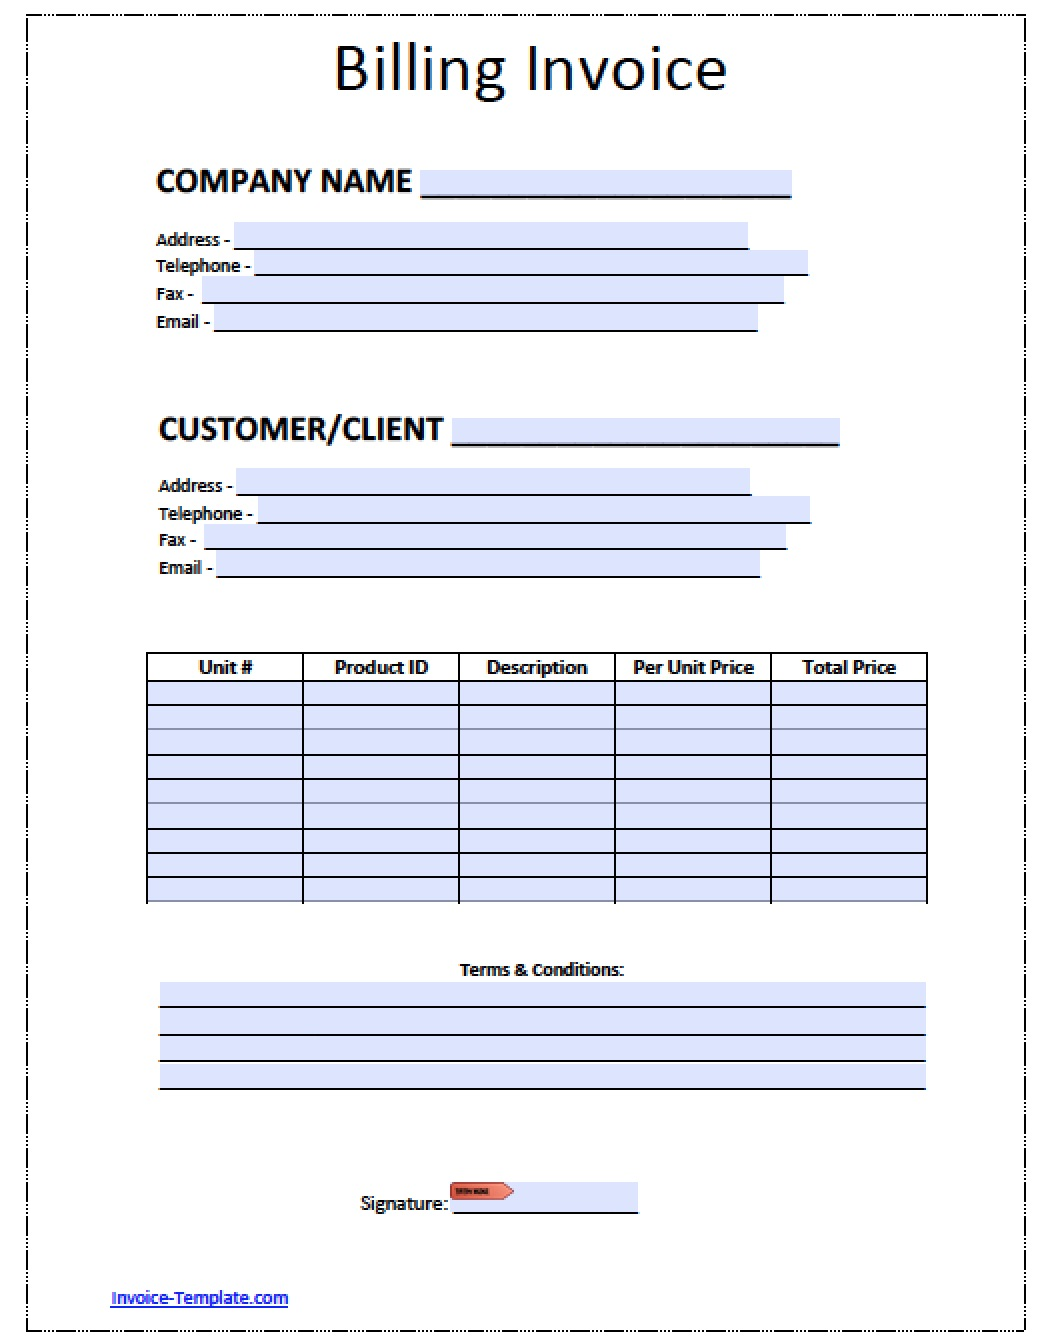 Free Billing Invoice Template Excel PDF Word Doc - Free invoice template : free printable invoices download